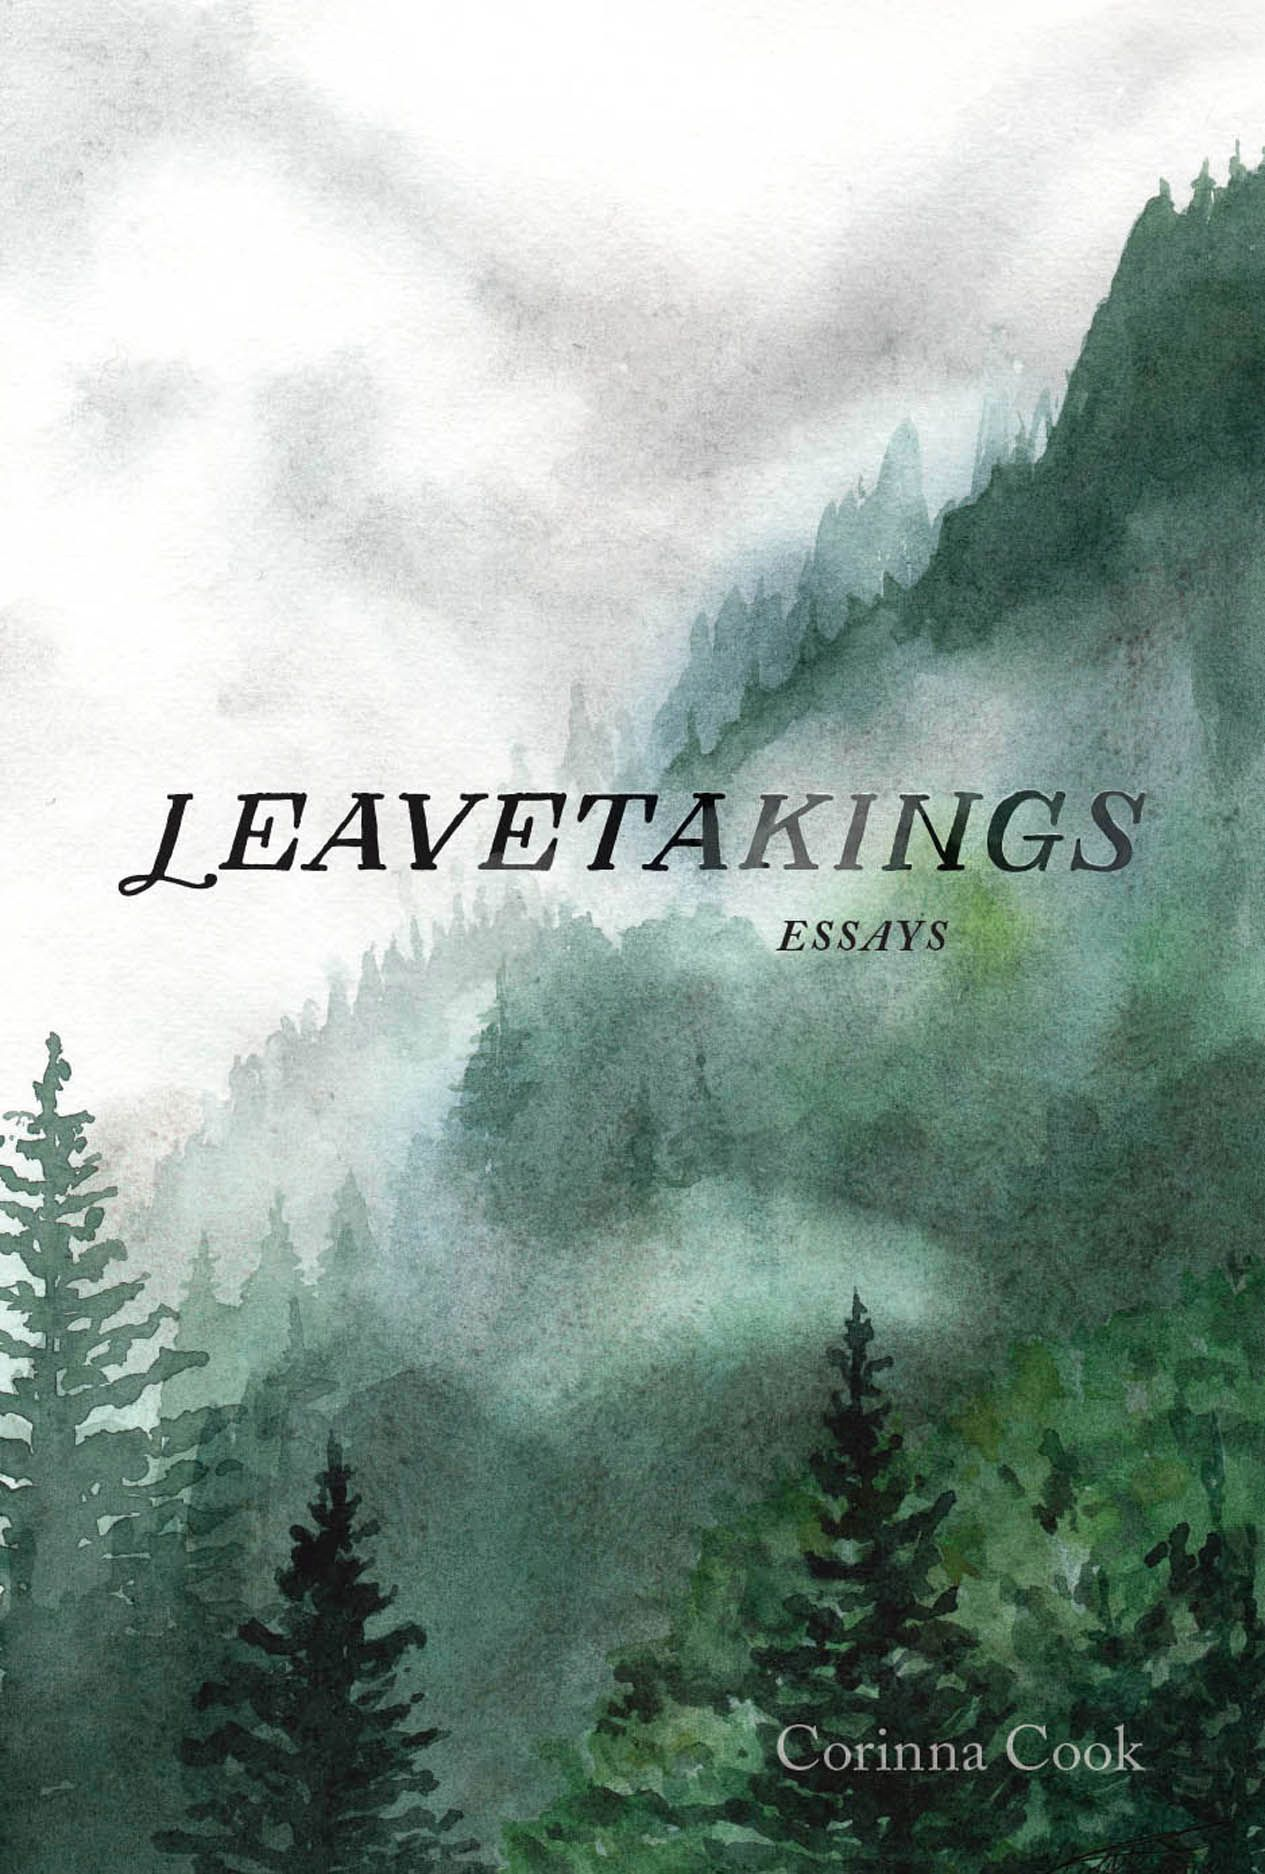 Leavetakings: Essays